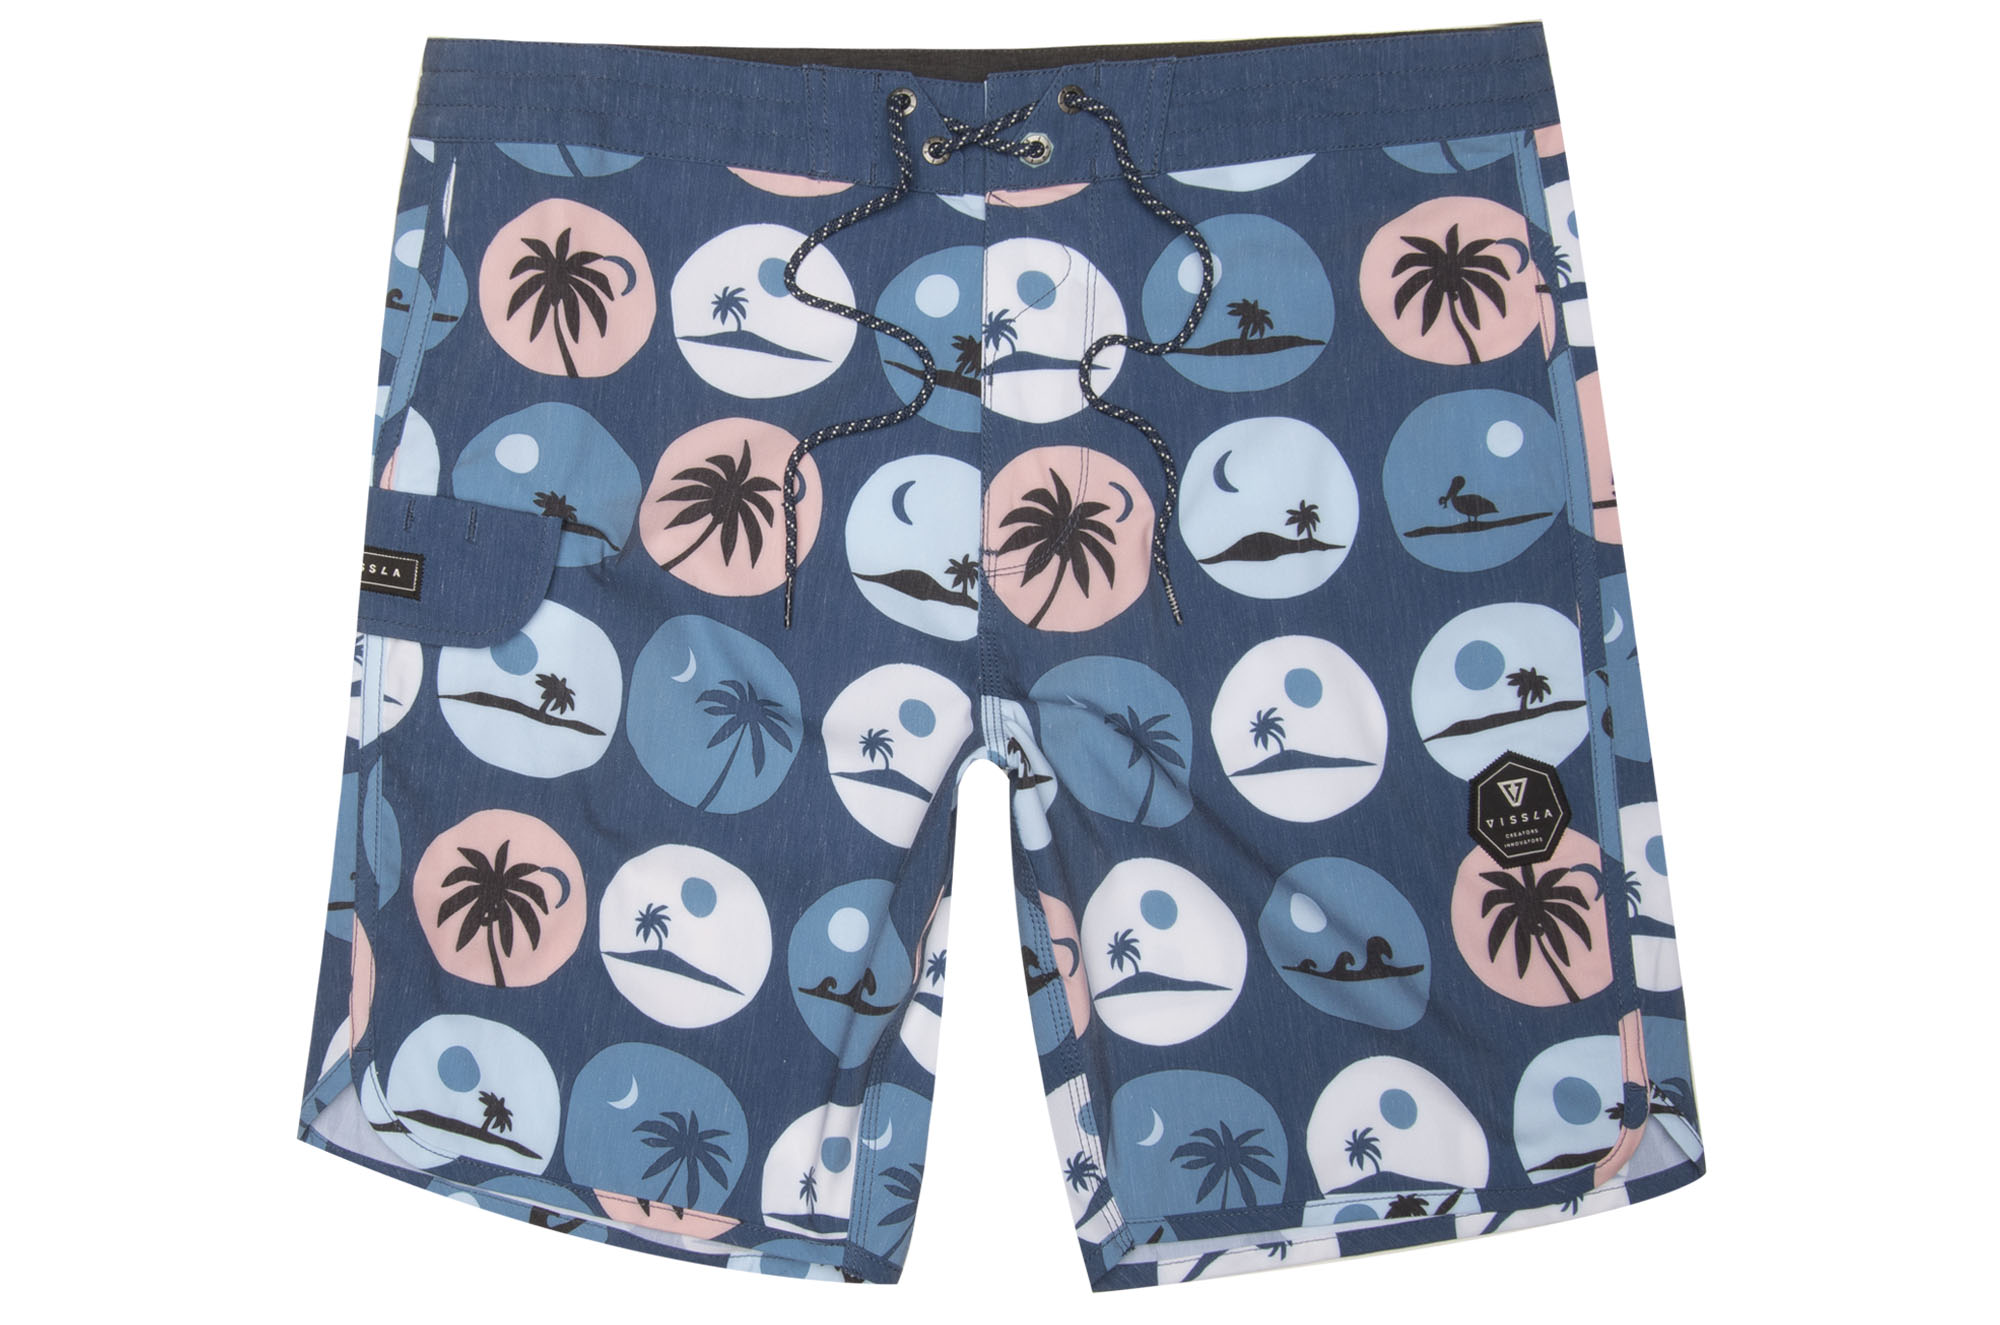 496e2a2508ecd Boardshort Spotlight: Best Vissla Boardshorts & Trunks in 2019 ...